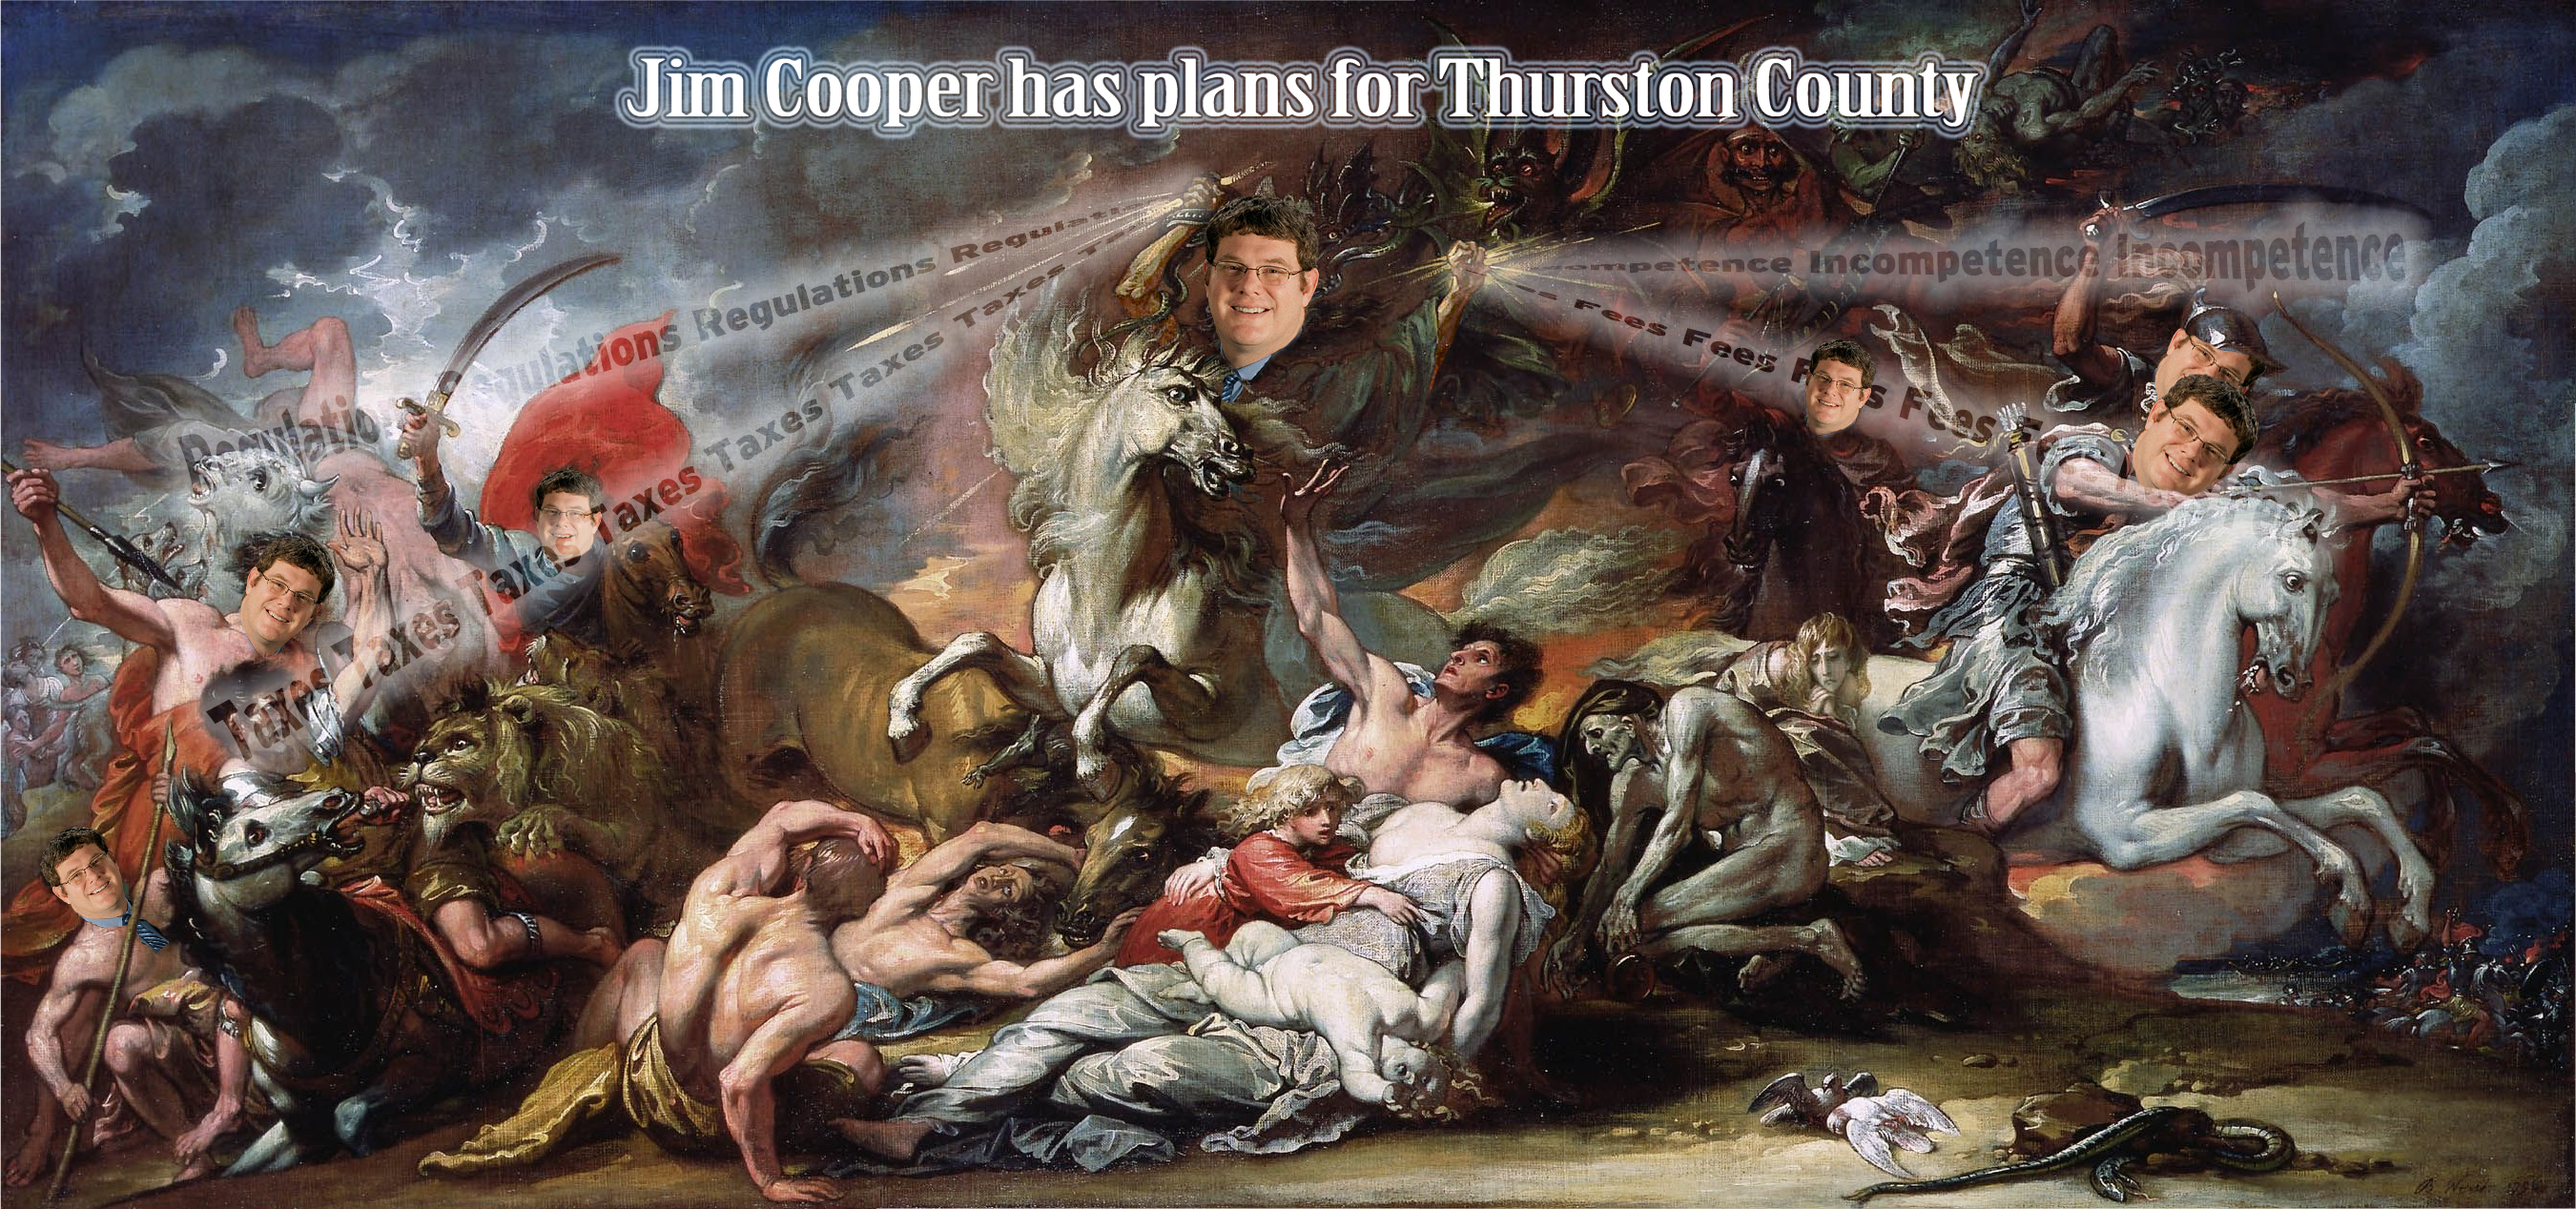 Jim Cooper has terrible plans for Thurston County, but voters get to decide if they want to experience these plans